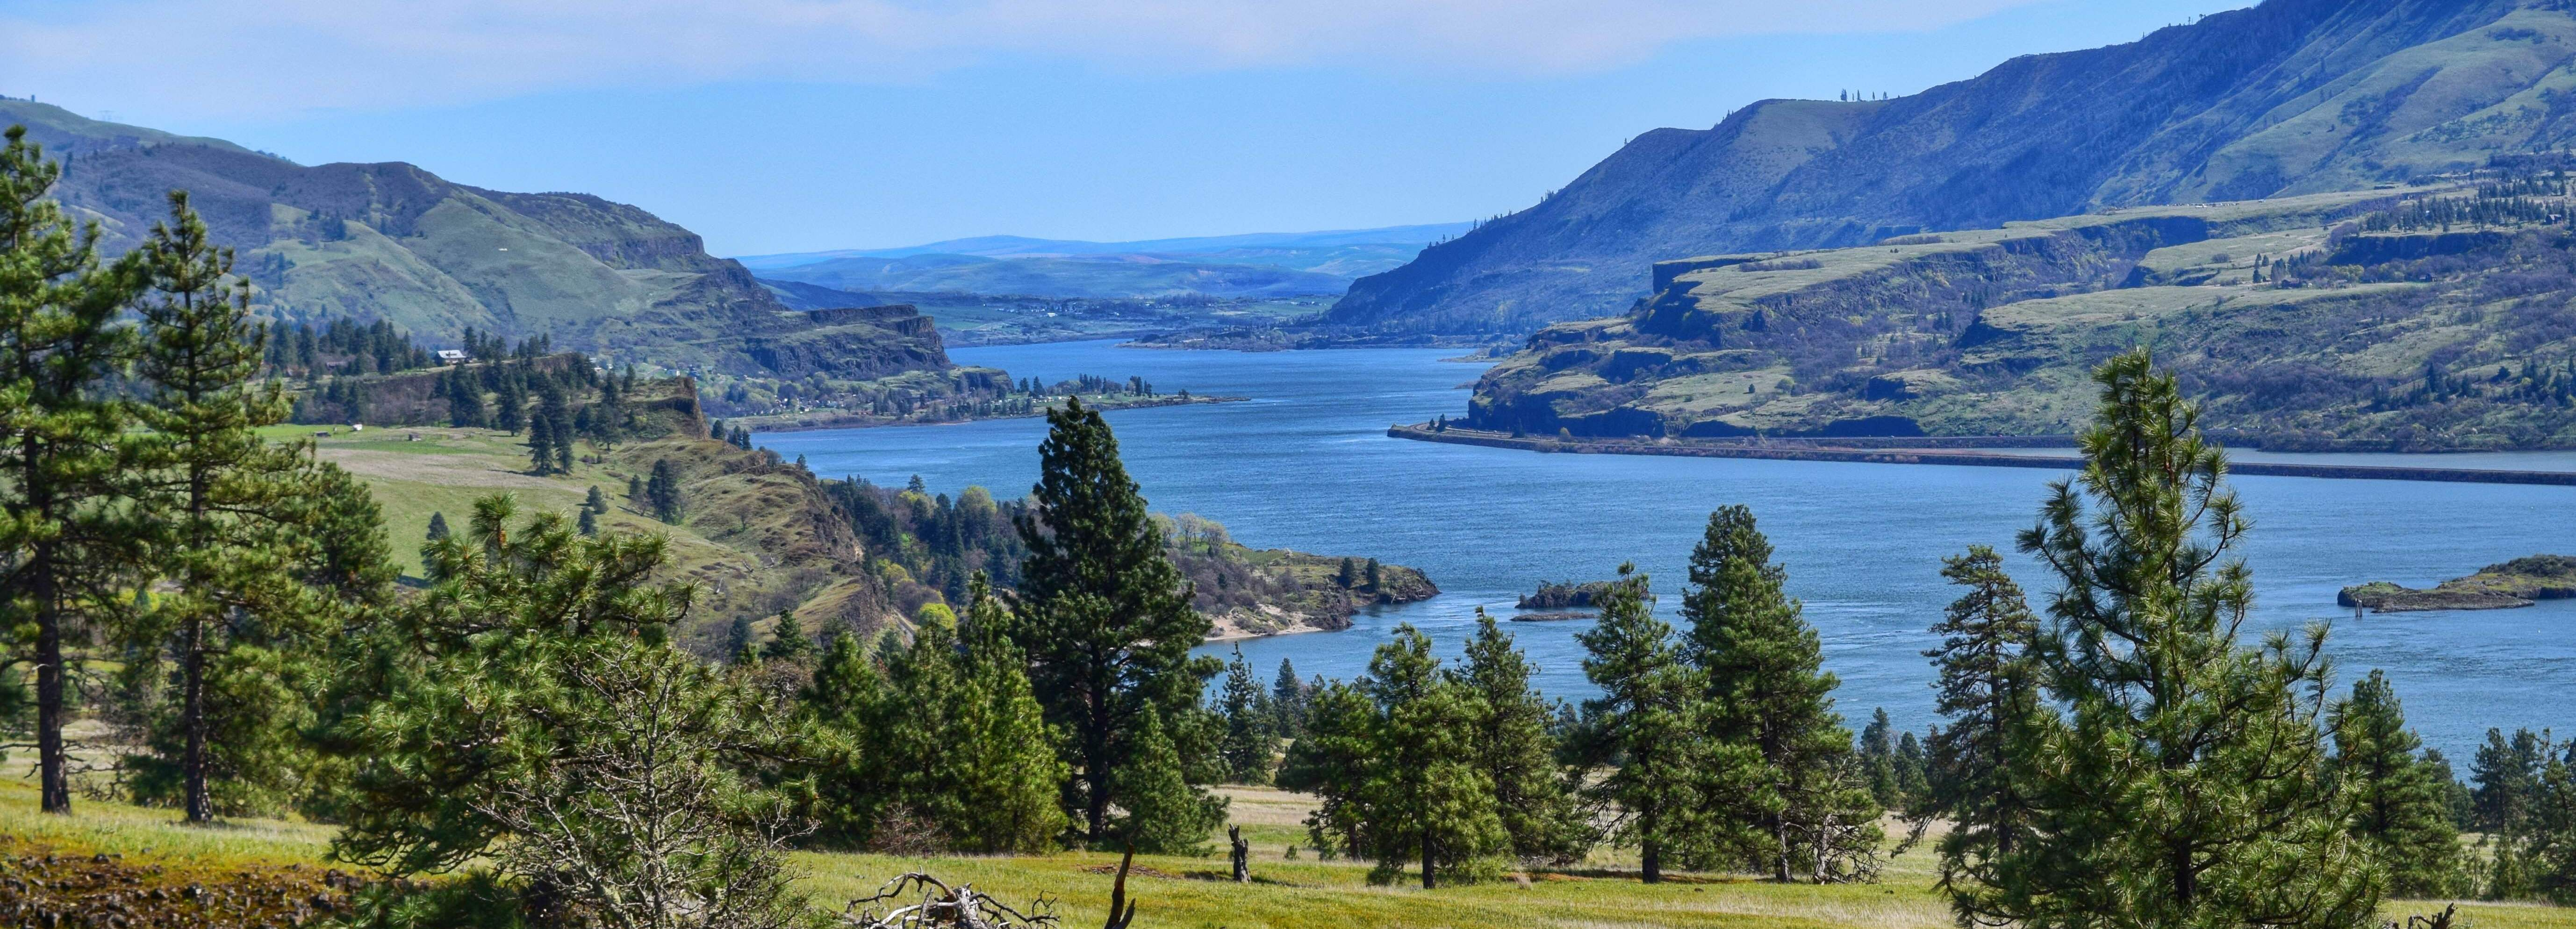 Sweeping Changes Approved to Columbia River Gorge Management